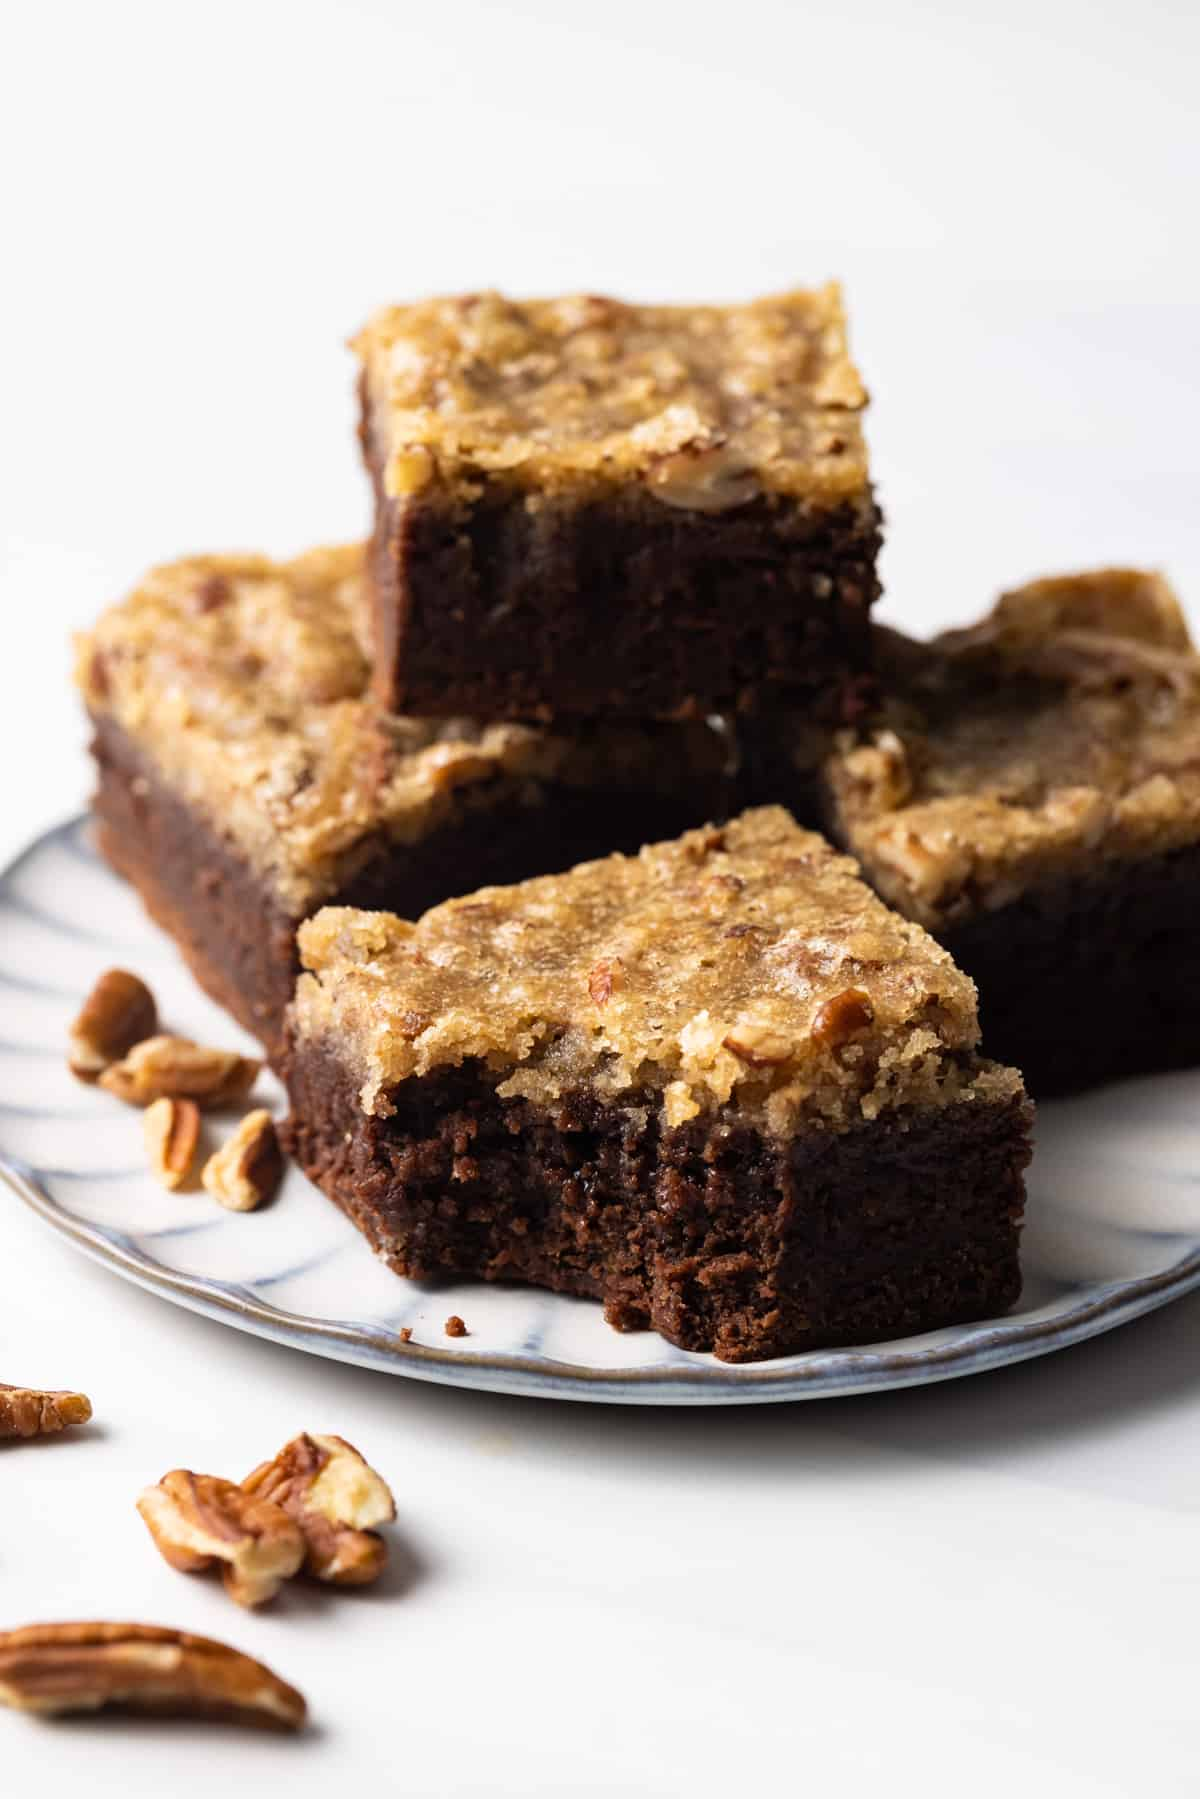 Four pecan pie brownies on a plate